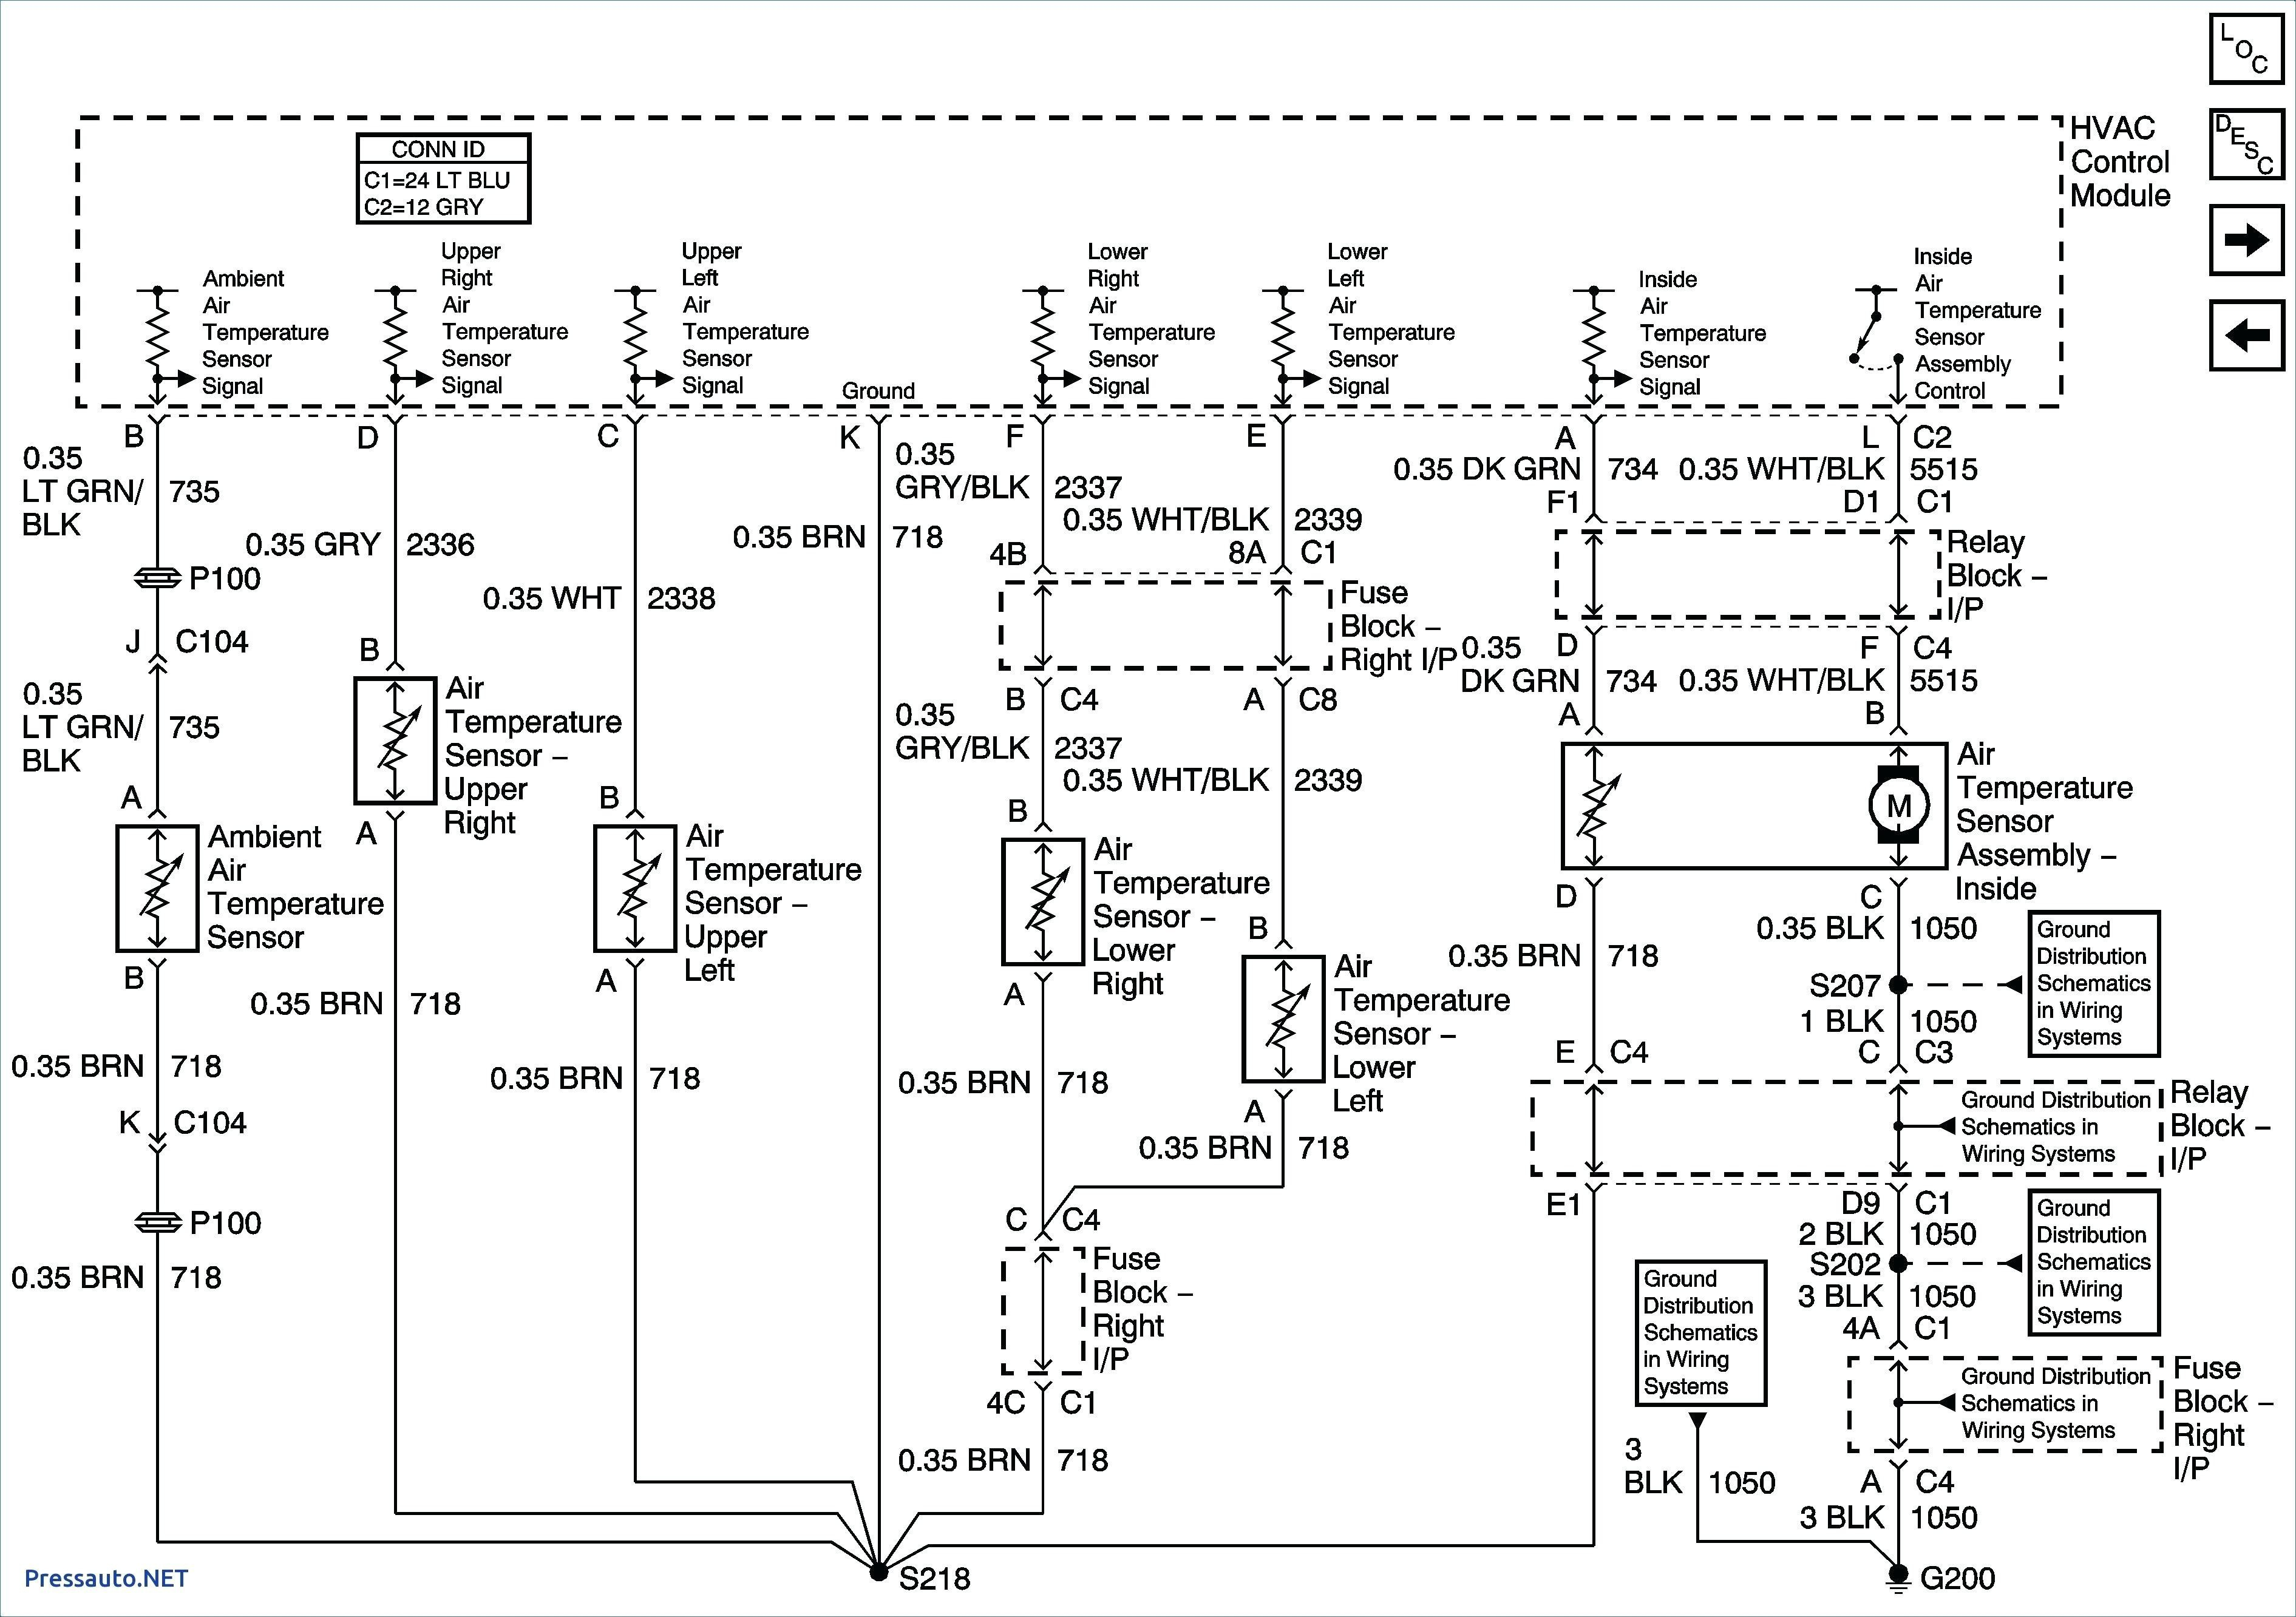 2004 Chevy Silverado Wiring Diagram Best Of 2003 2000 In Like - 2004 Chevy Silverado Radio Wiring Harness Diagram